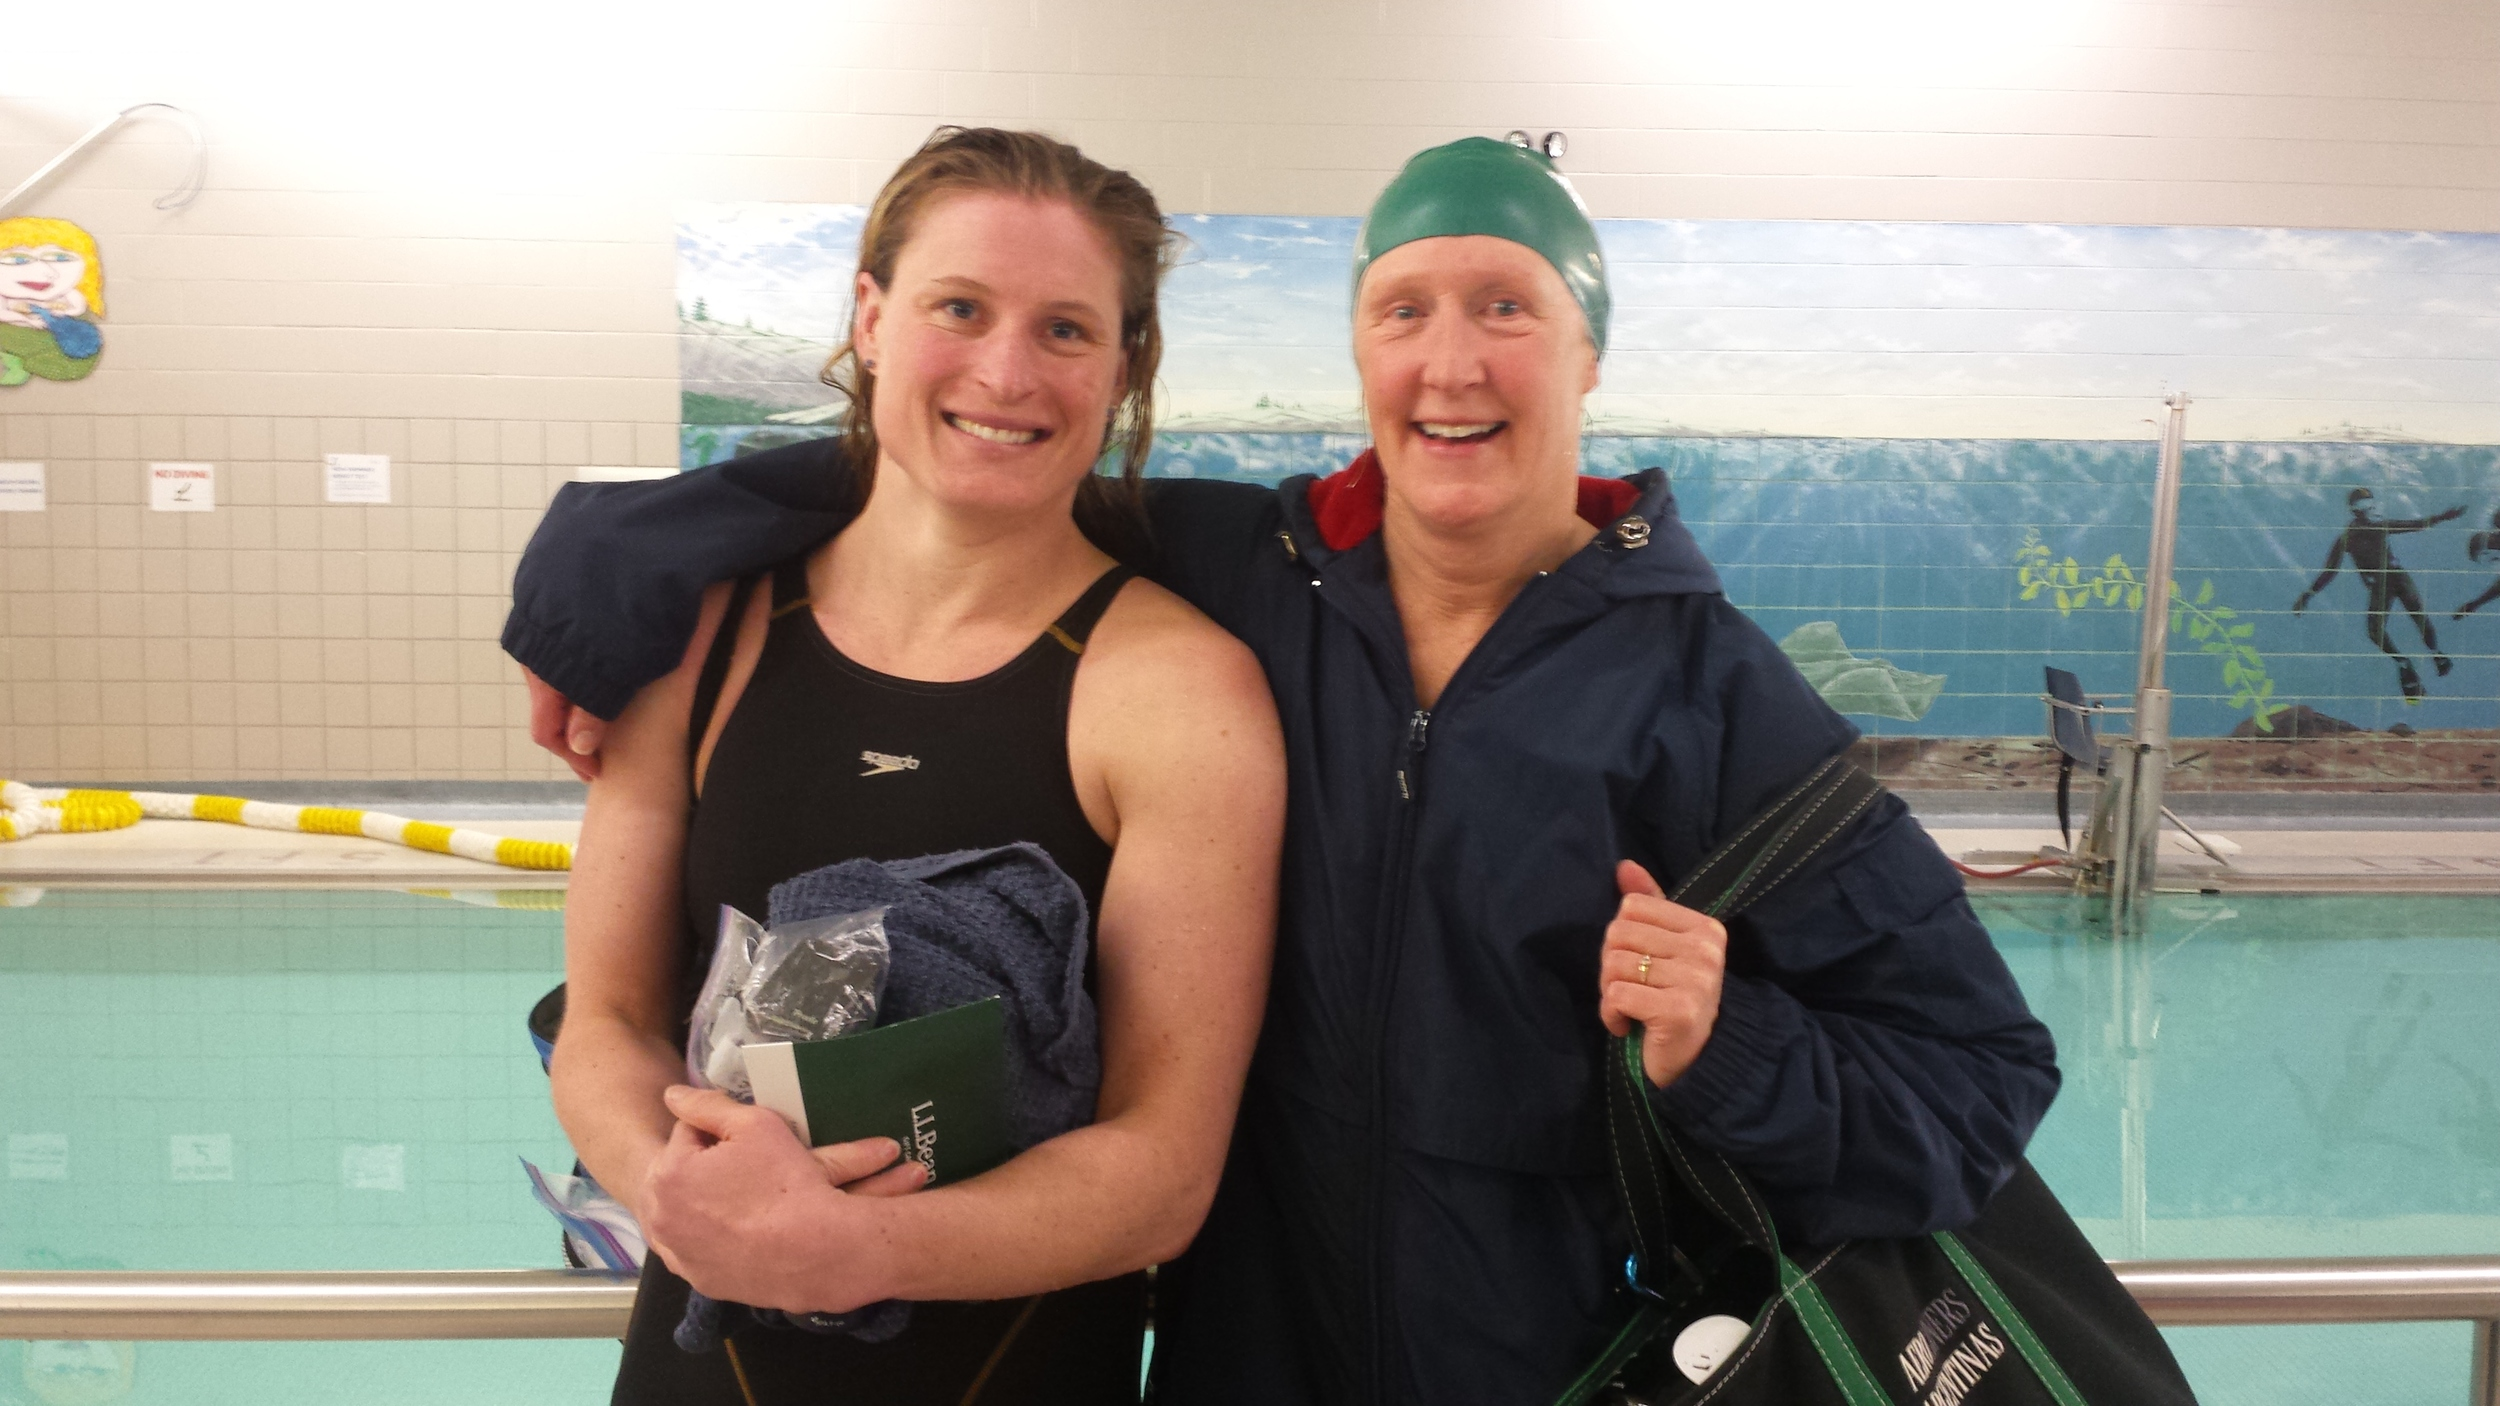 Women's Sprint Challenge winner Katrine Alcaide with 3rd place finisher (and 5-time champ) Mary Estabrook